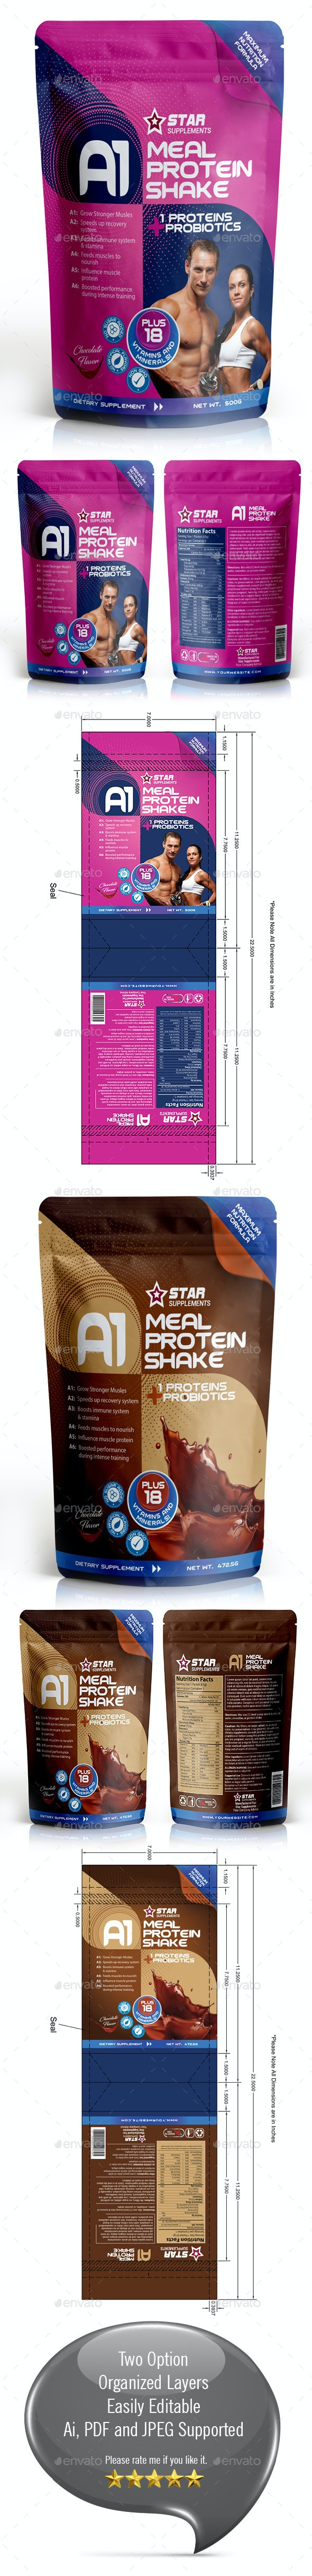 Protein Supplement Packaging Template - Packaging Print Templates